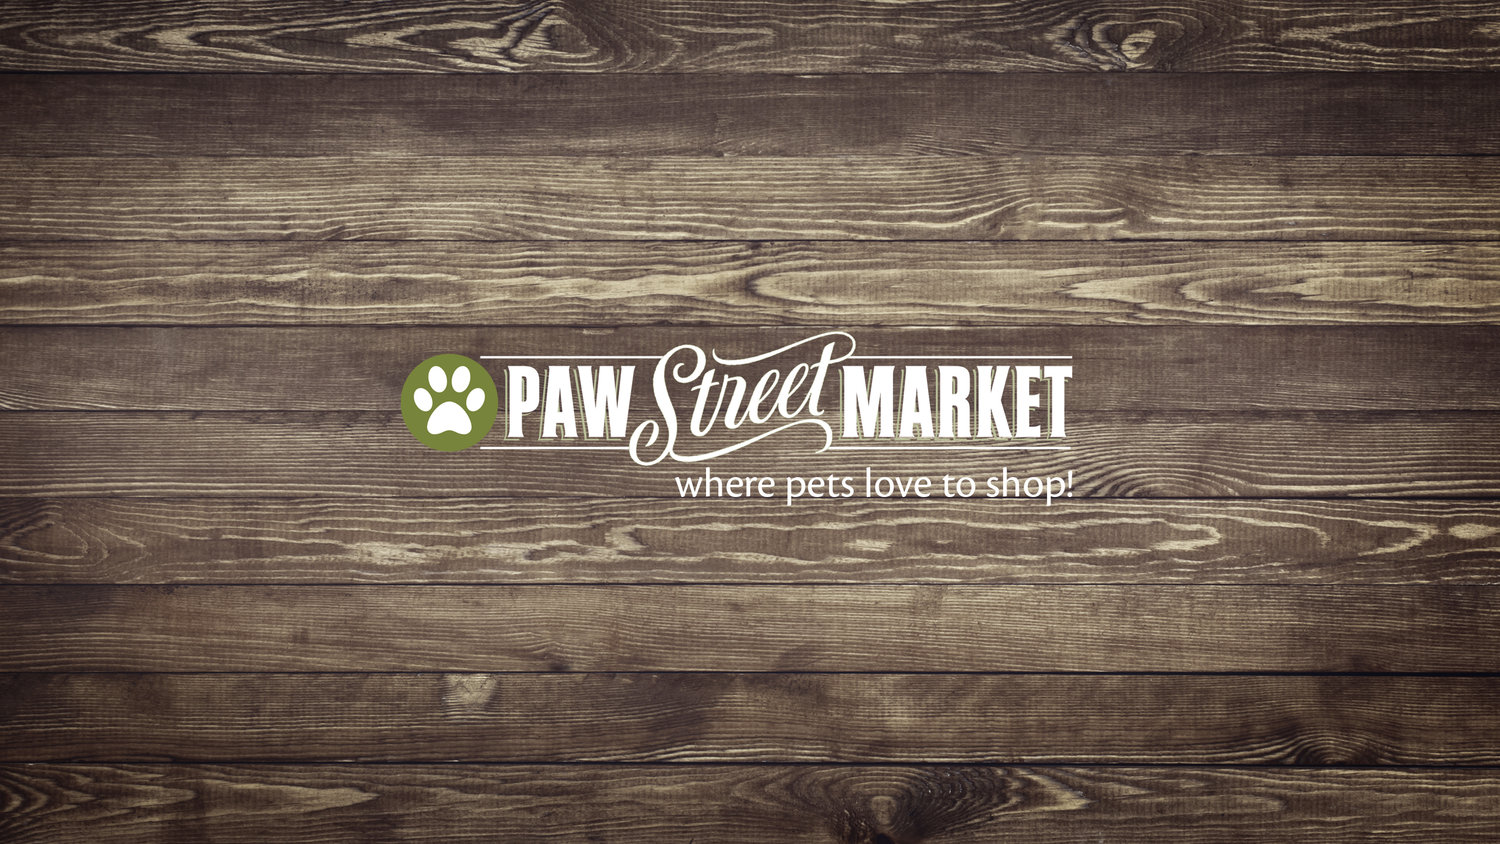 Feature Products at Paw Street Market